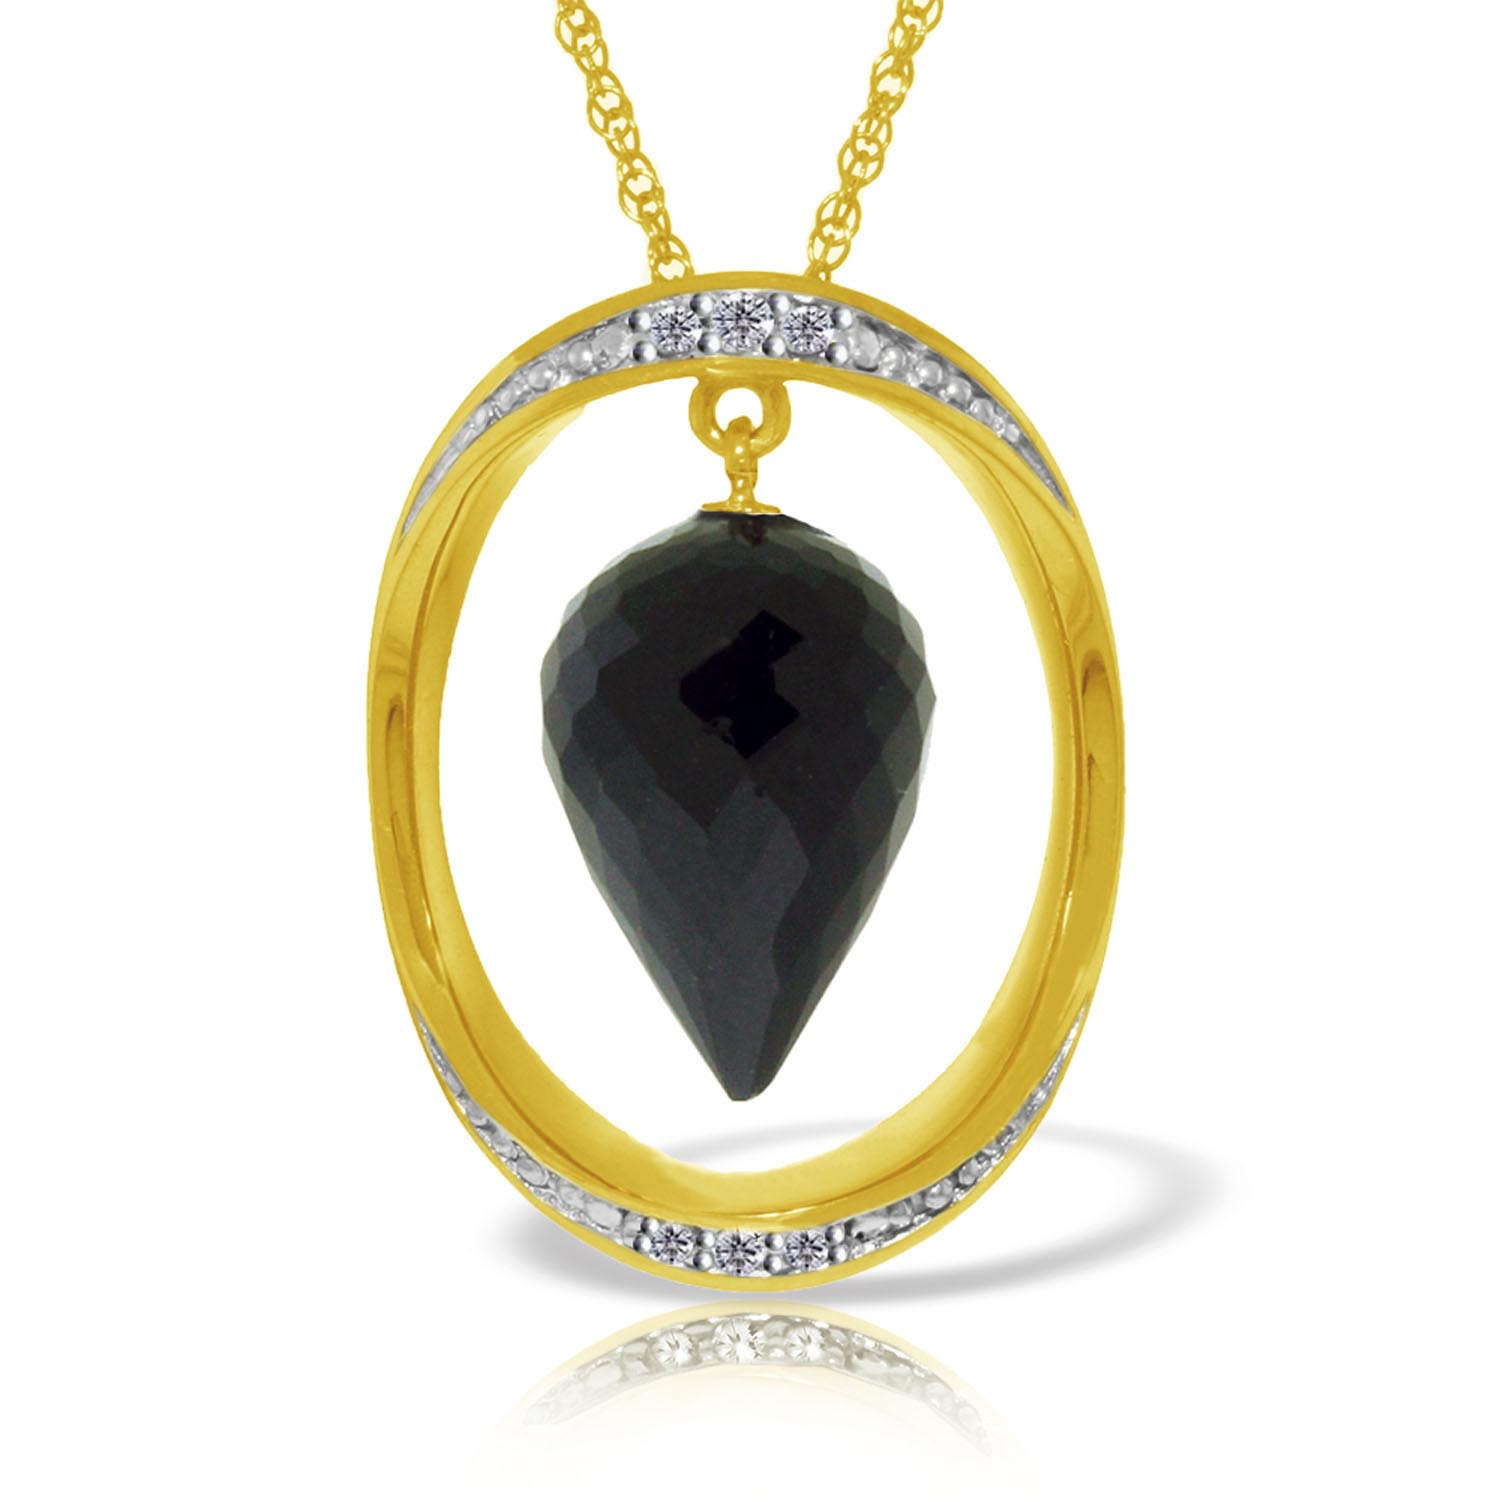 Black Spinel & Diamond Drop Pendant Necklace in 9ct Gold